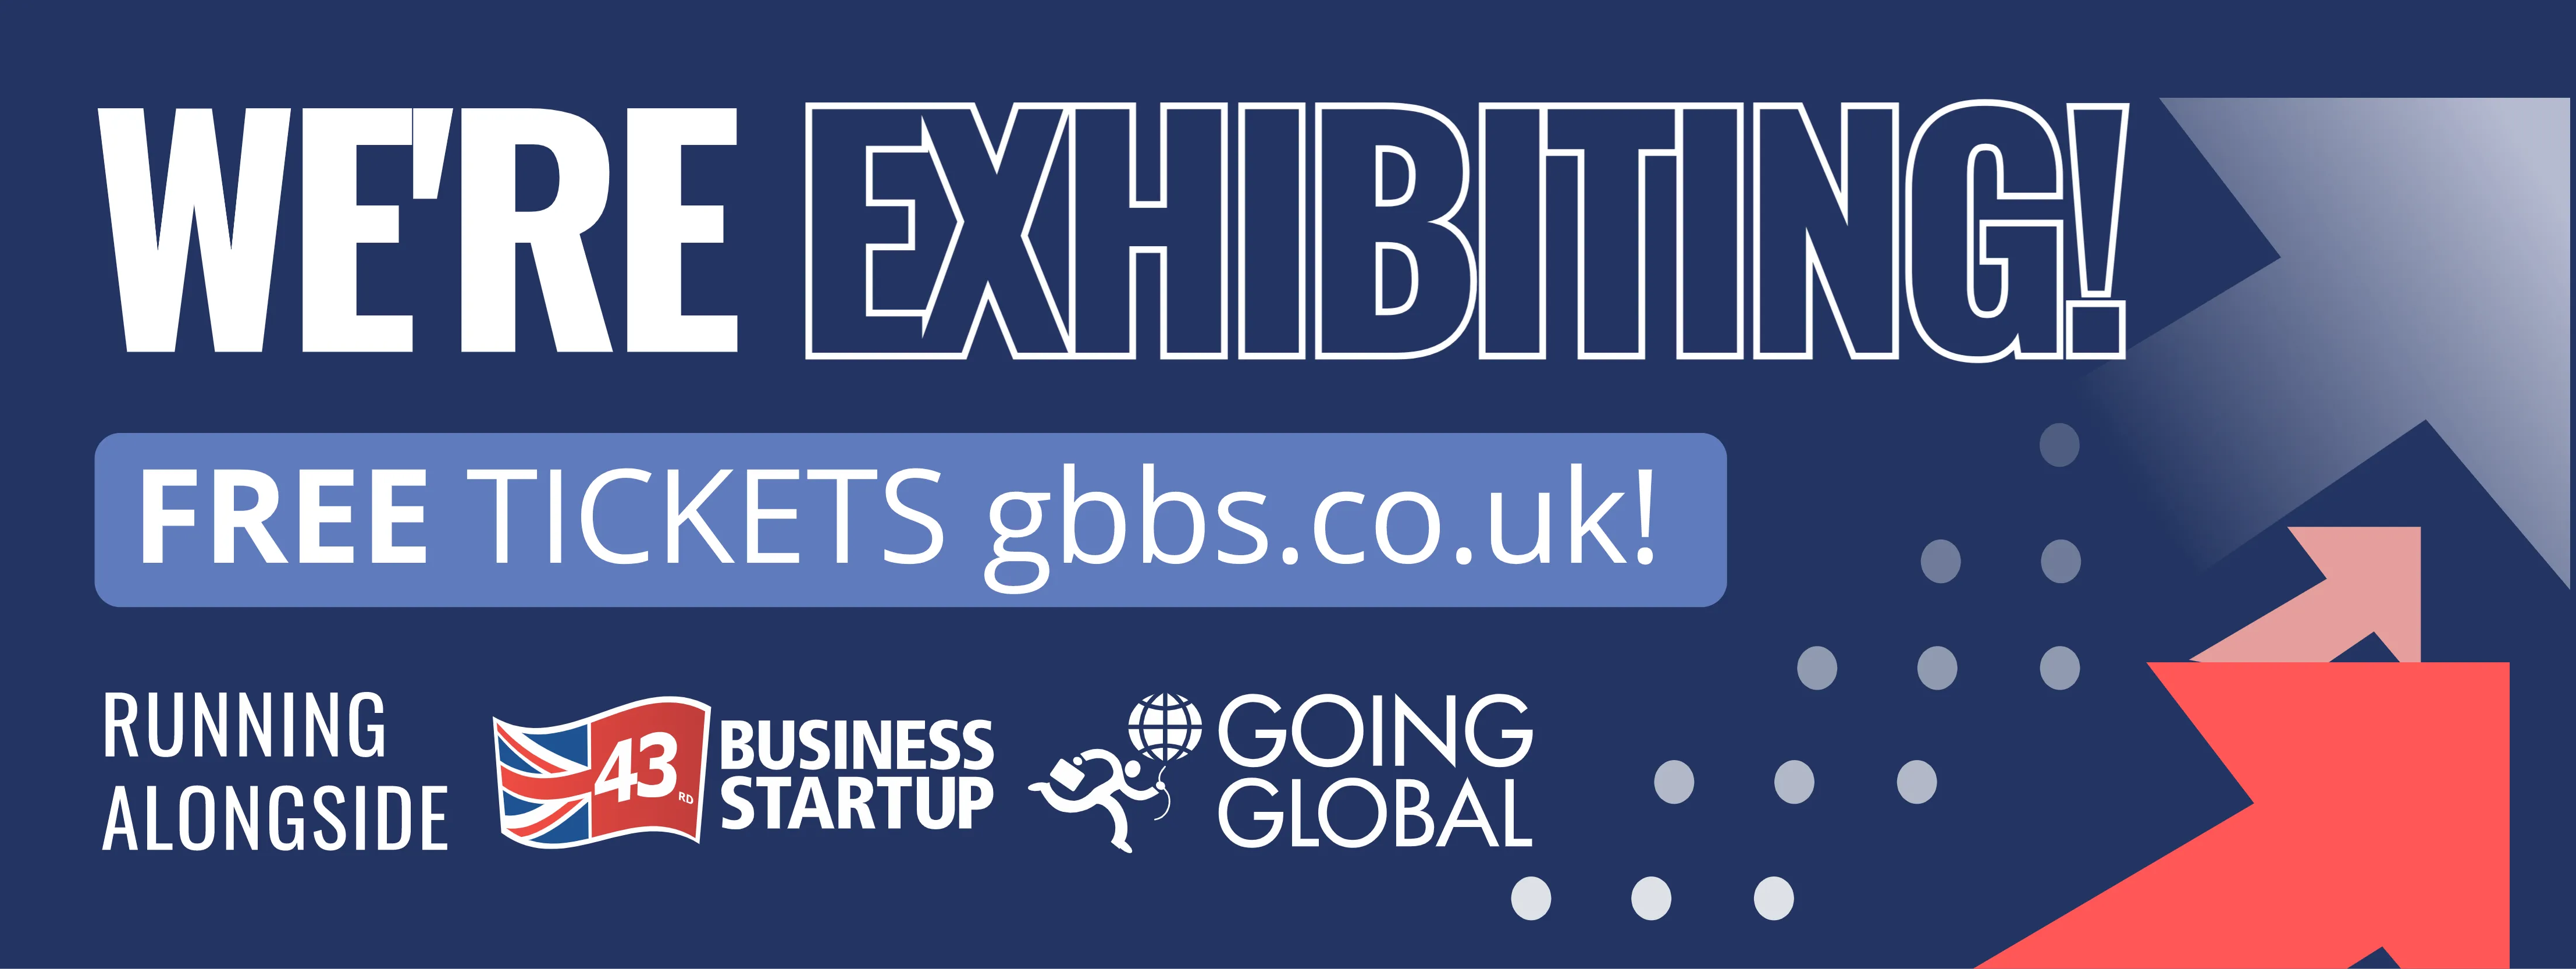 We're exhibiting at The Business Show 2021